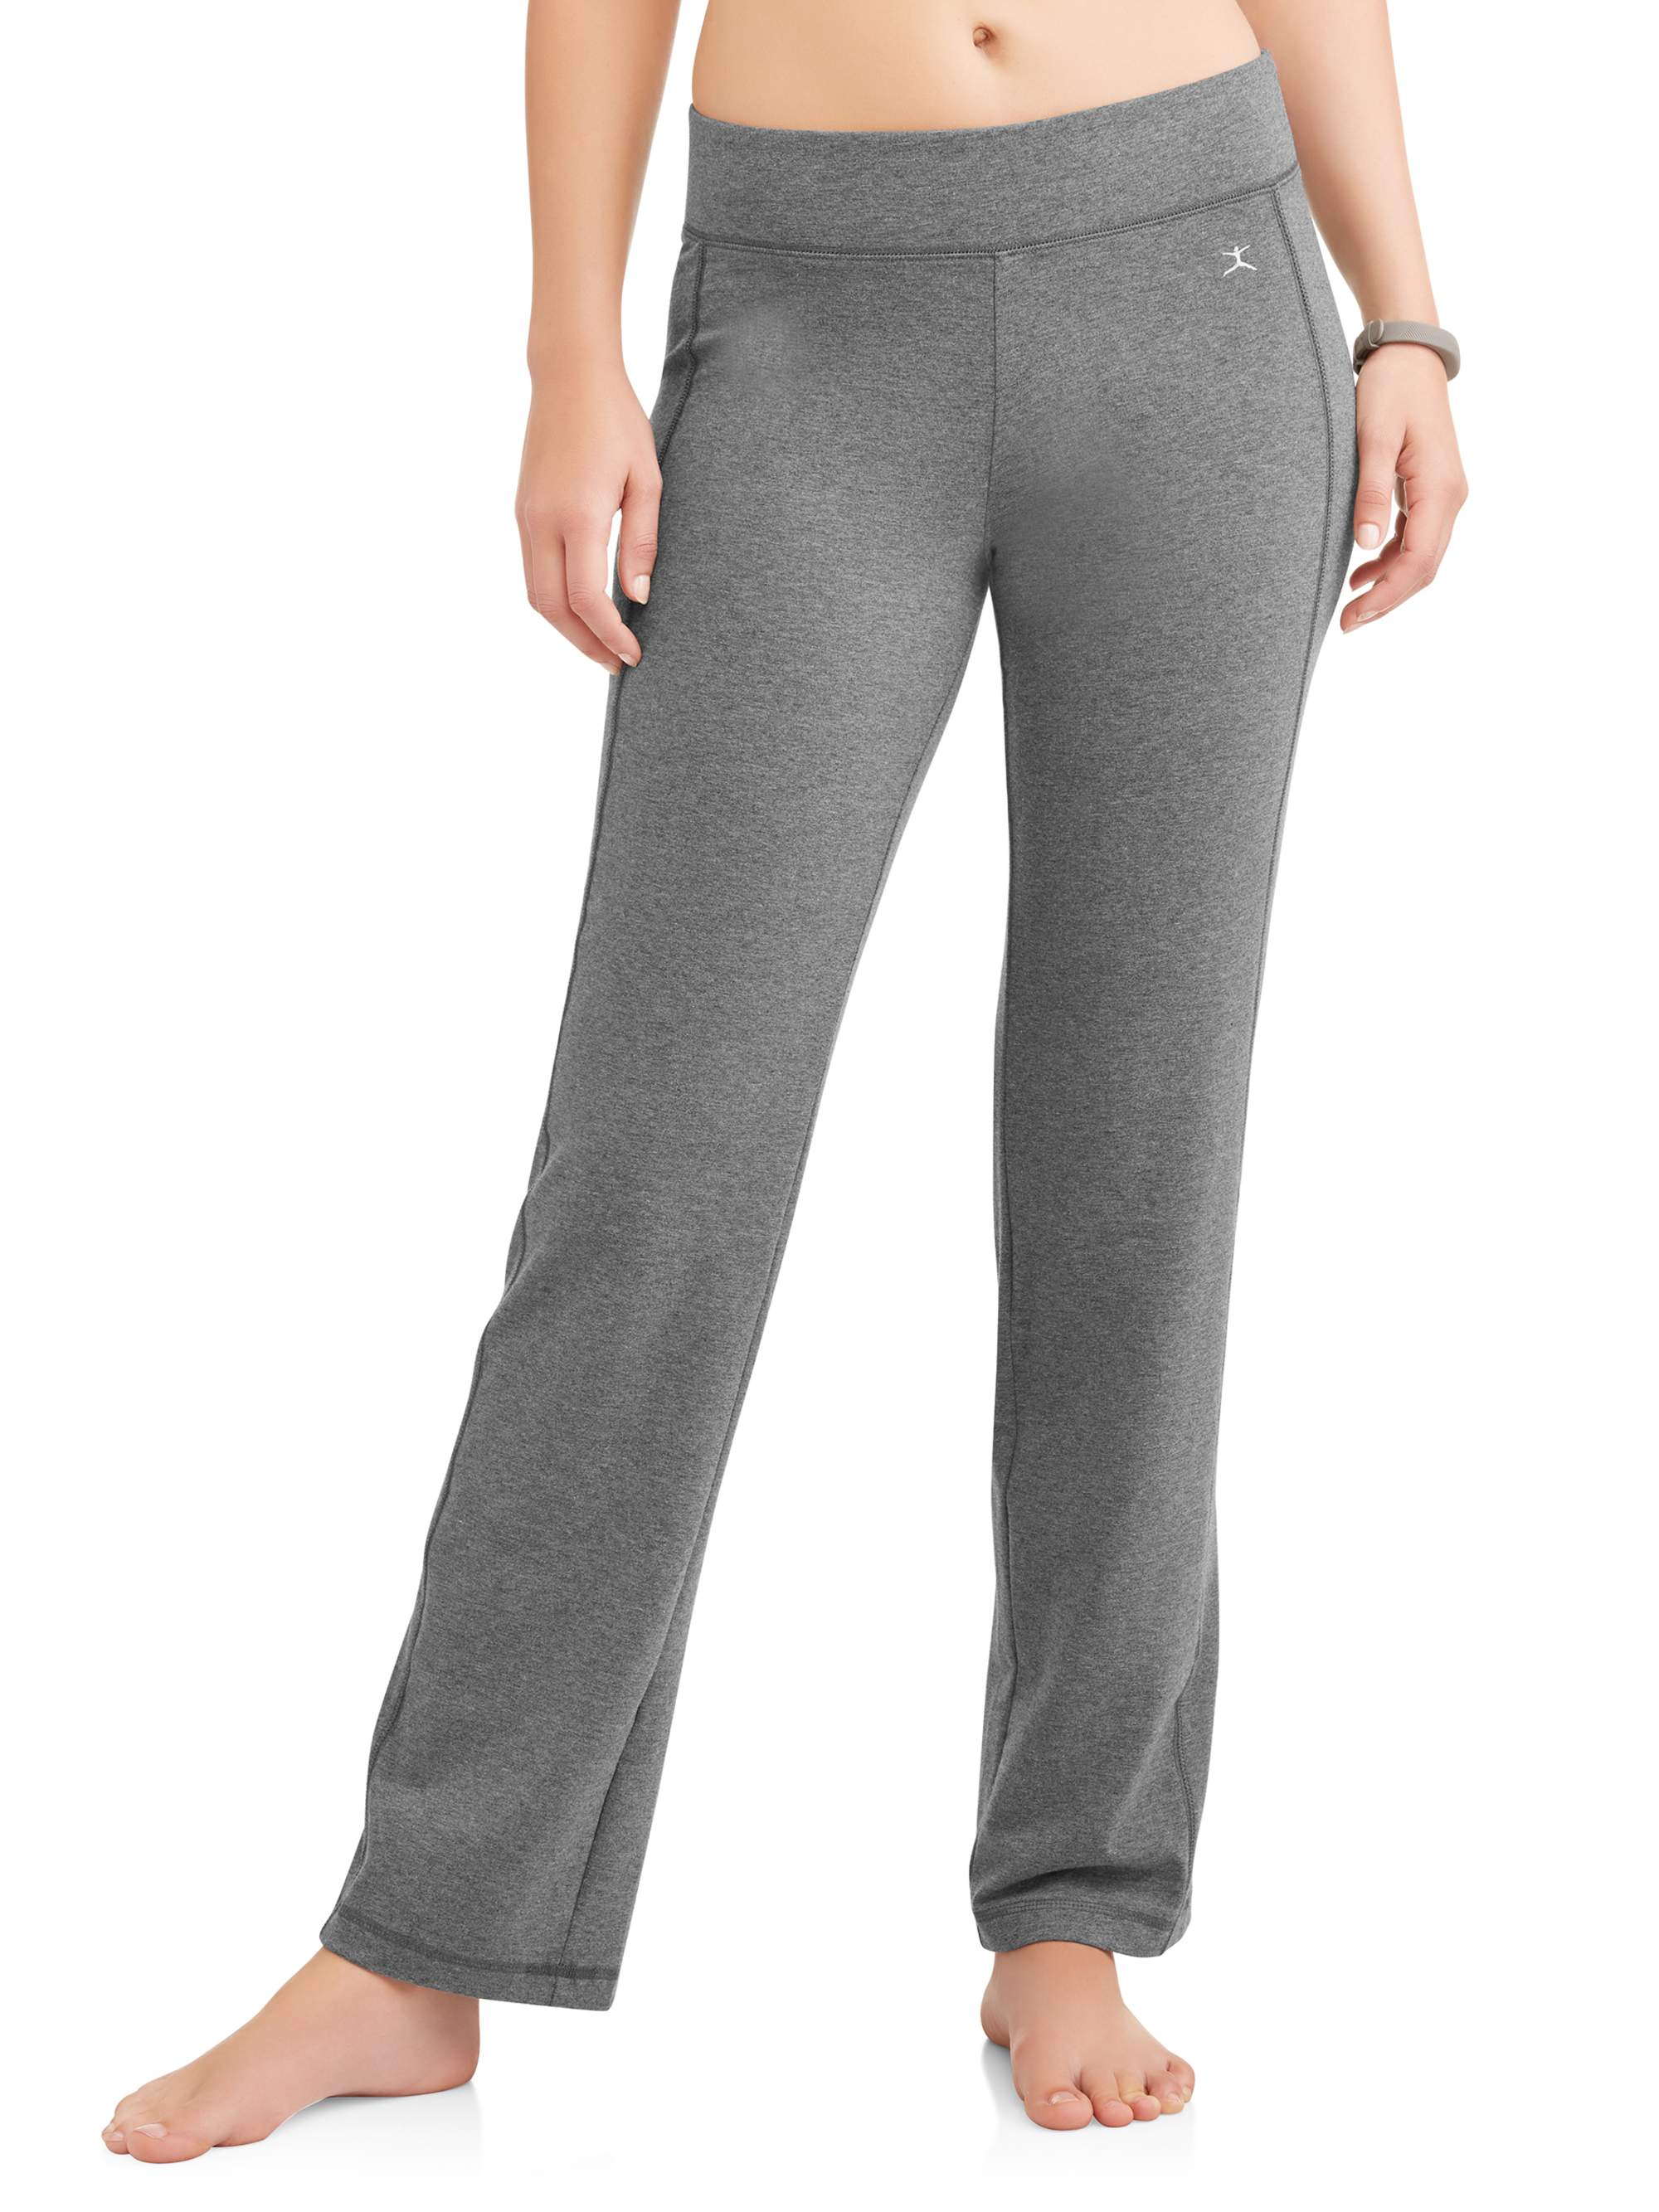 63cbdf7775fc7 Danskin - Women's Core Active Sleek Fit Yoga Pant - Walmart.com